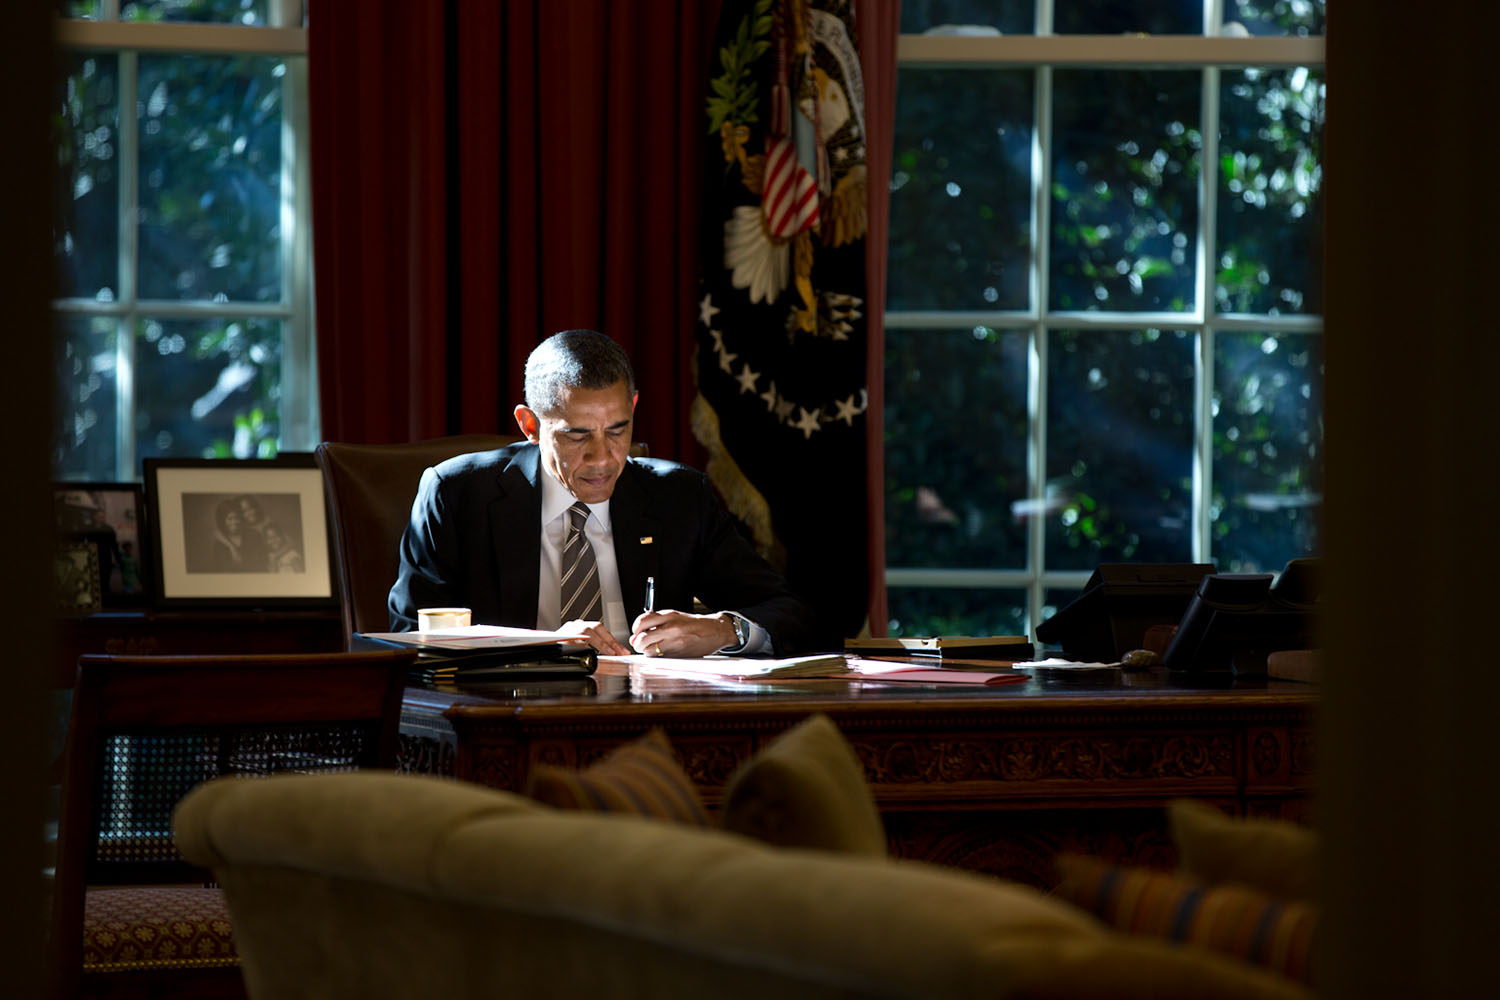 President Barack Obama in Oval Office